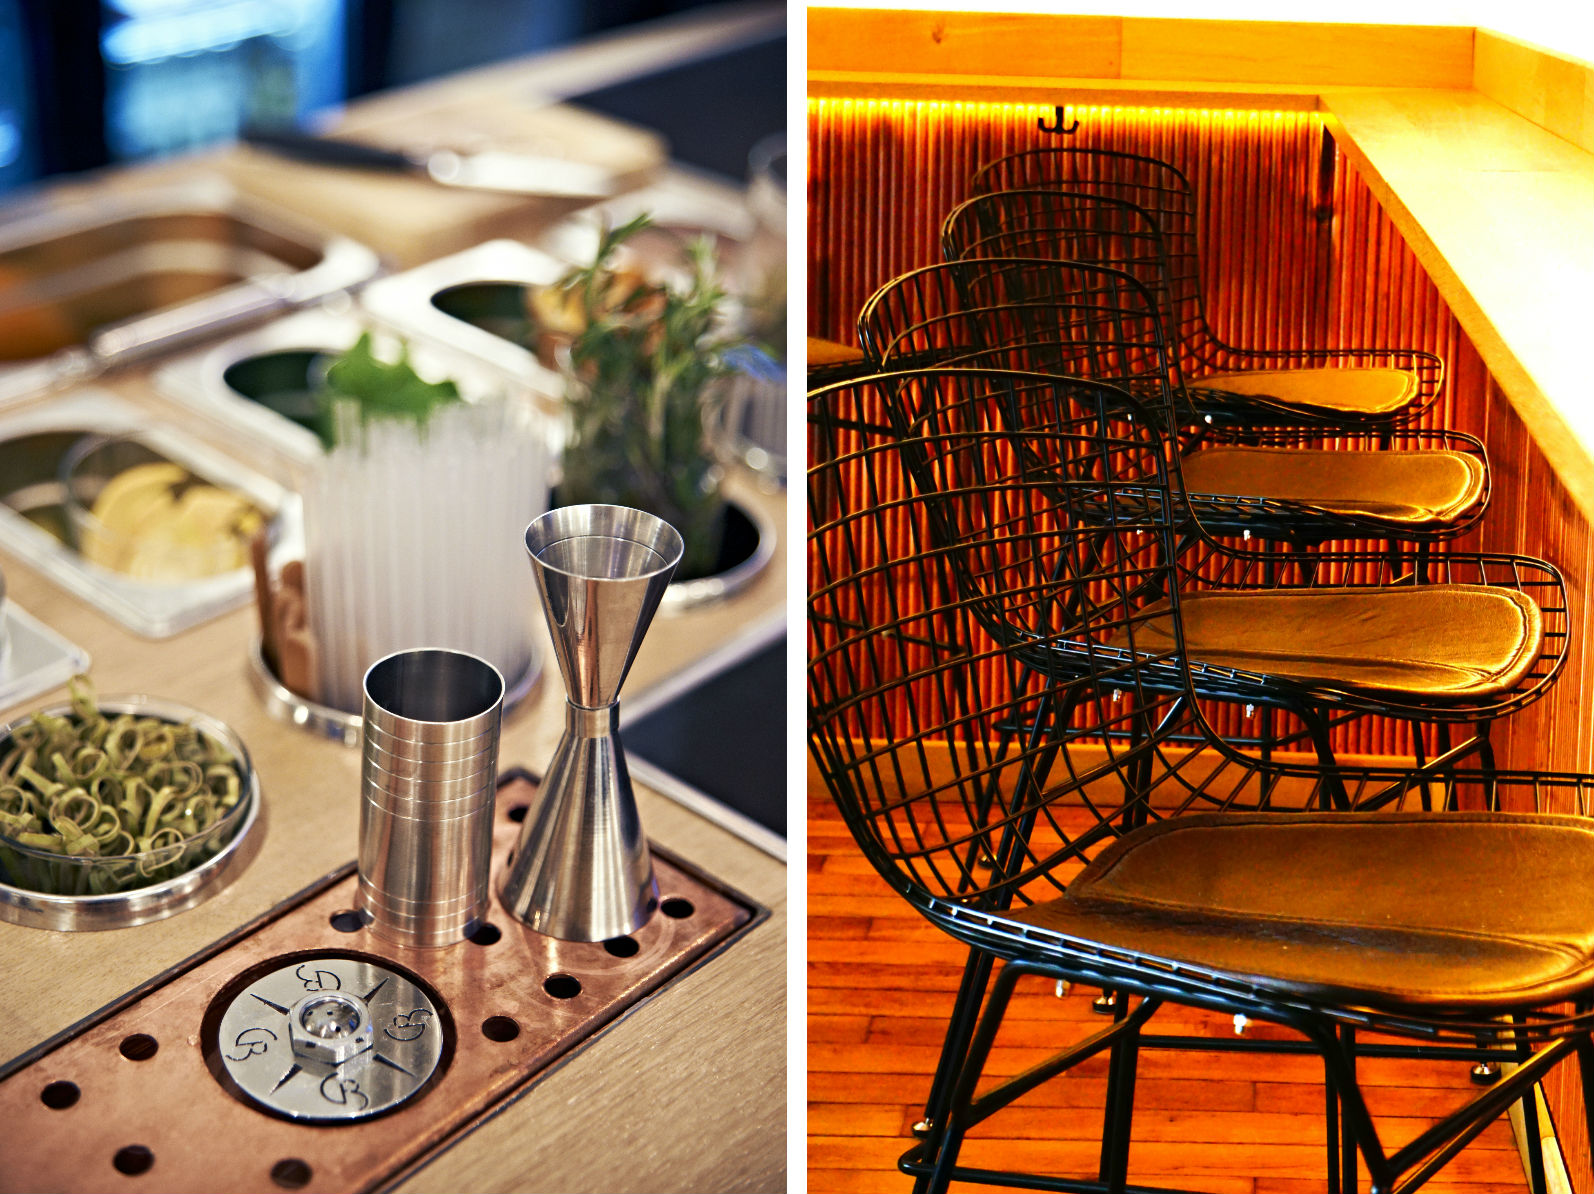 HiP Paris blog. Endless summer at Copper Bay Cocktail Bar in the 10th arrondissement.